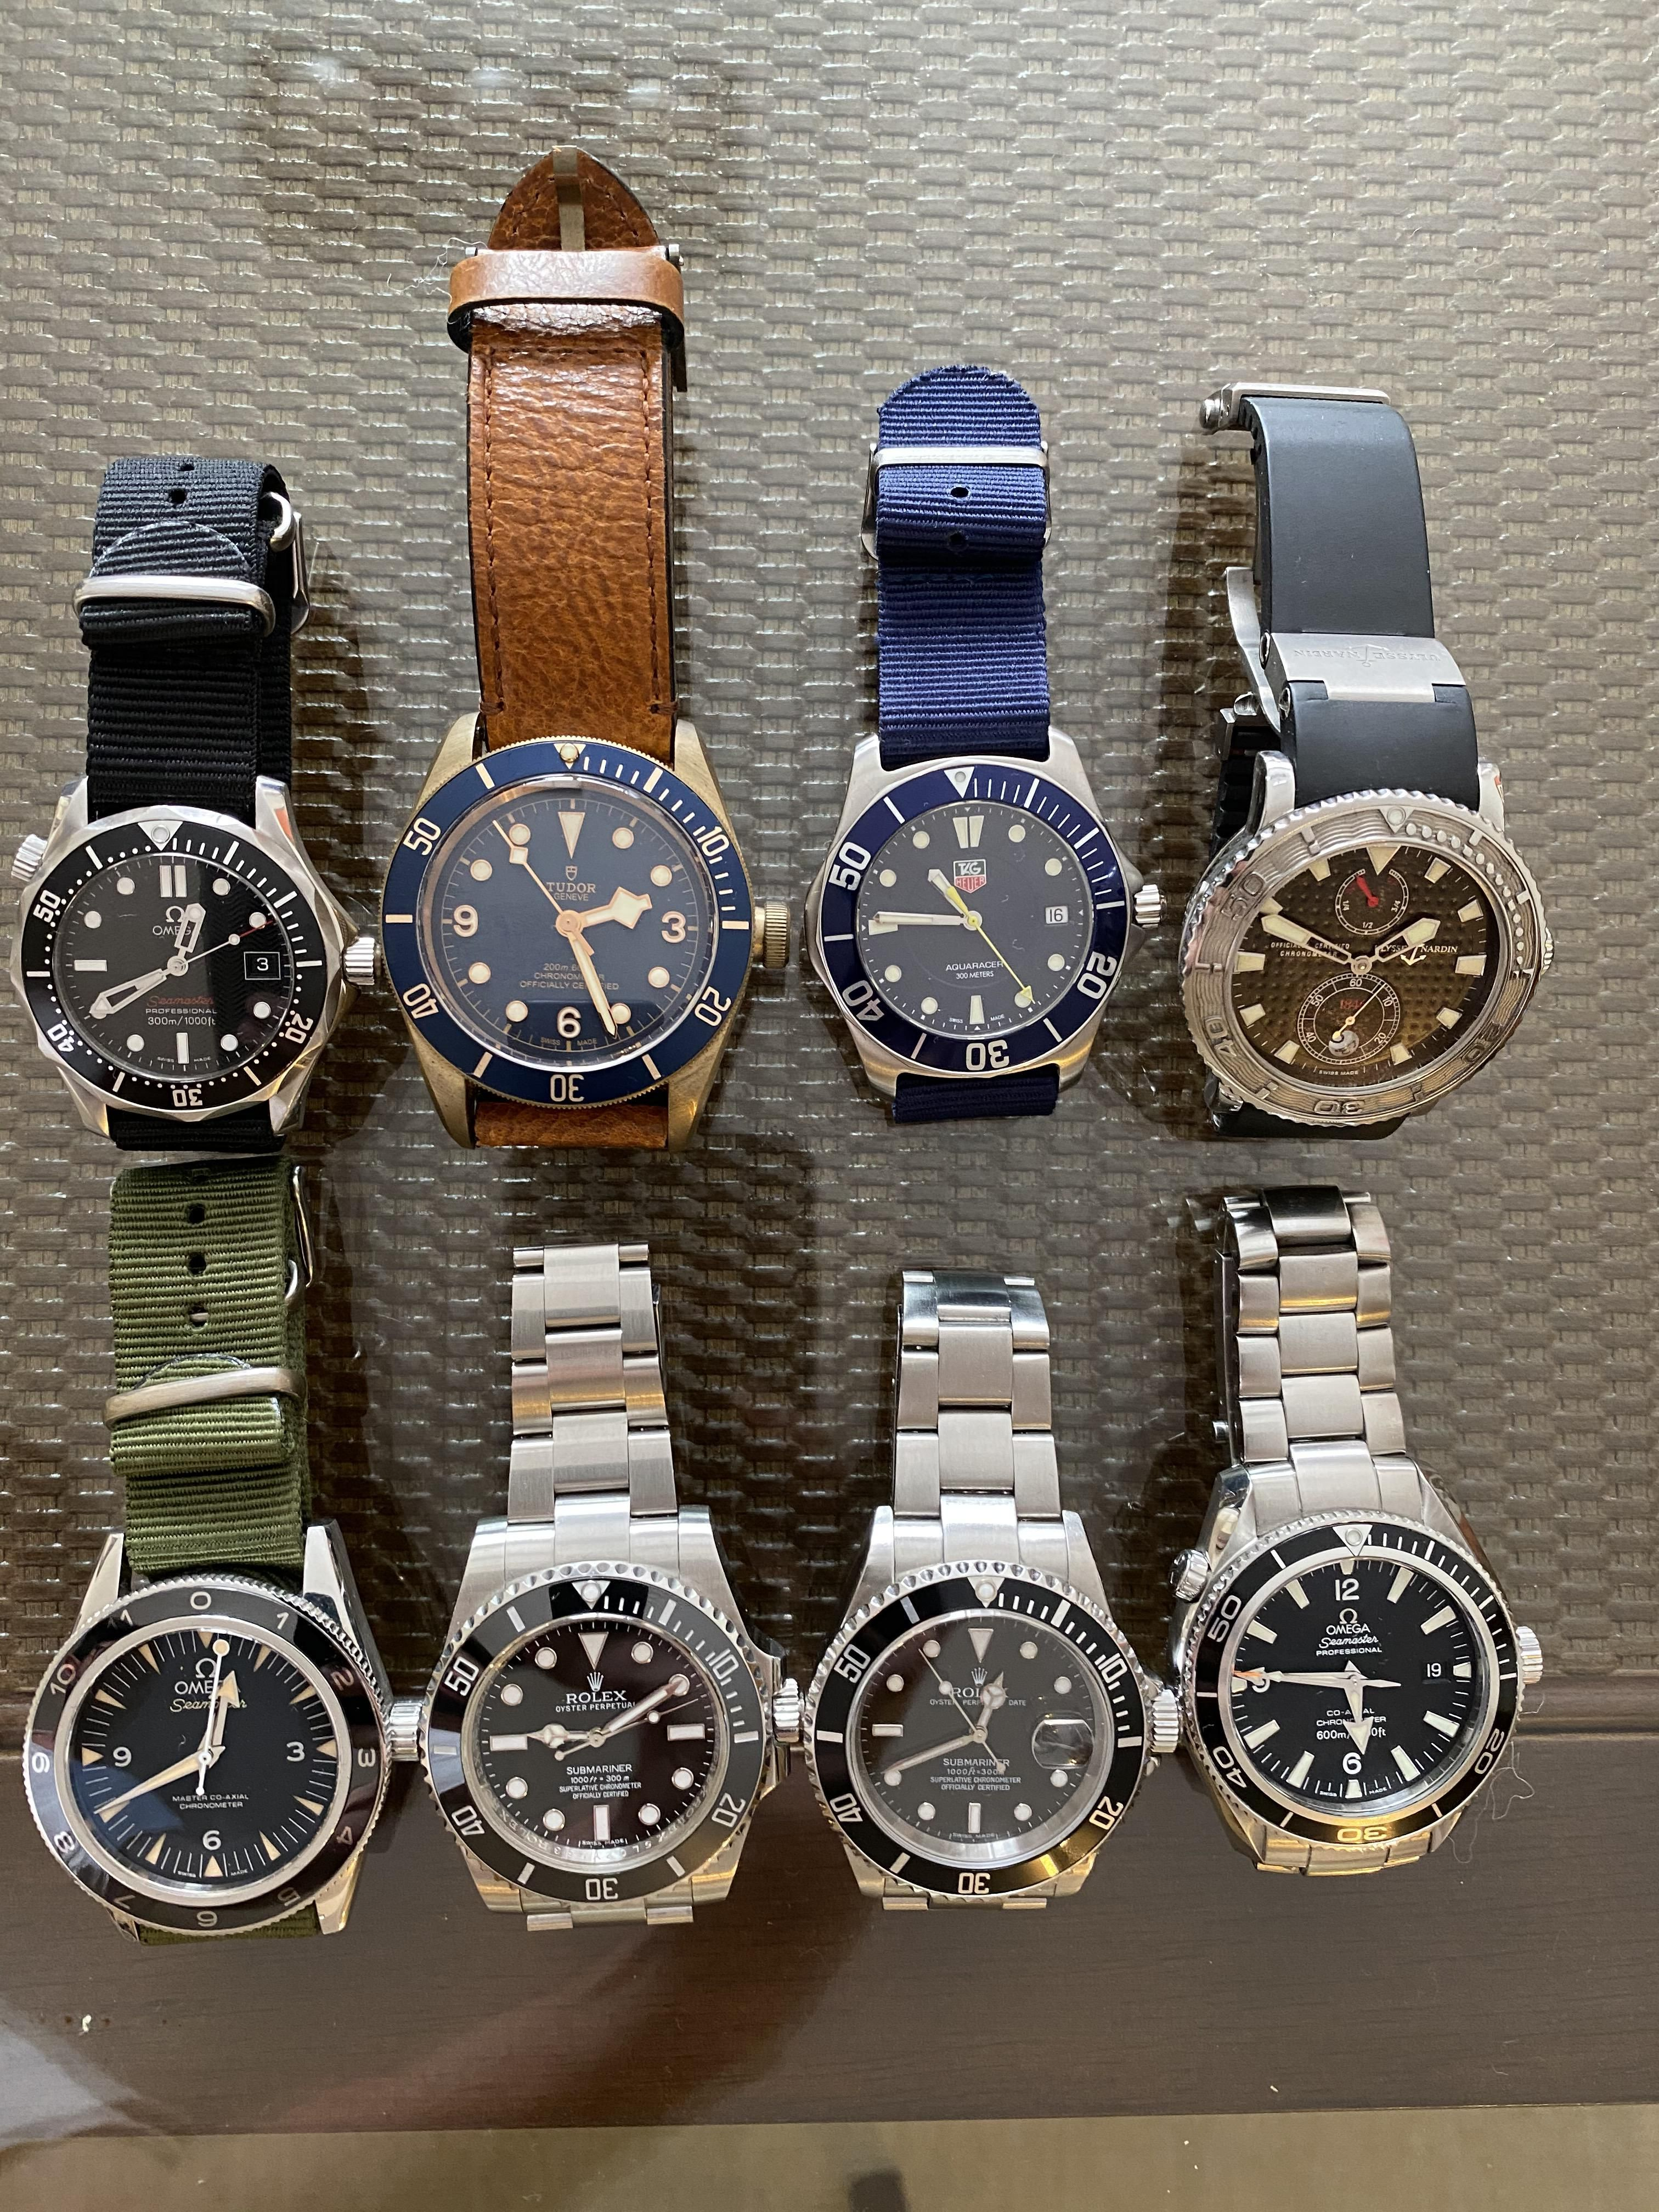 [Grand Seiko] Strap options help #menwatches #